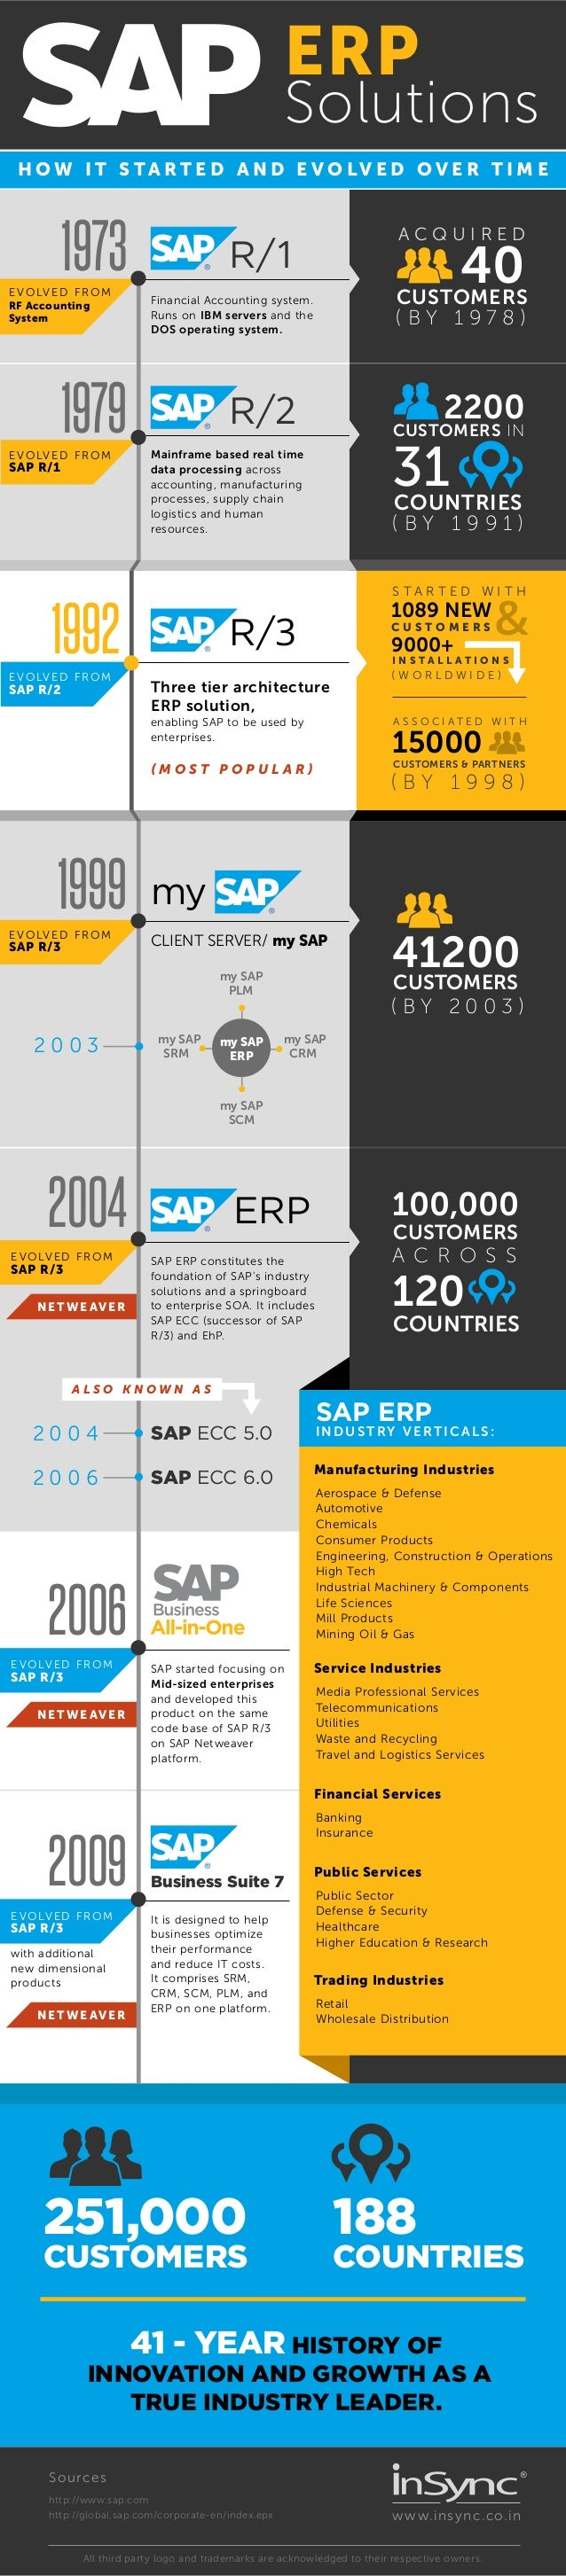 Sap Erp Solutions How It Evolved Over Time